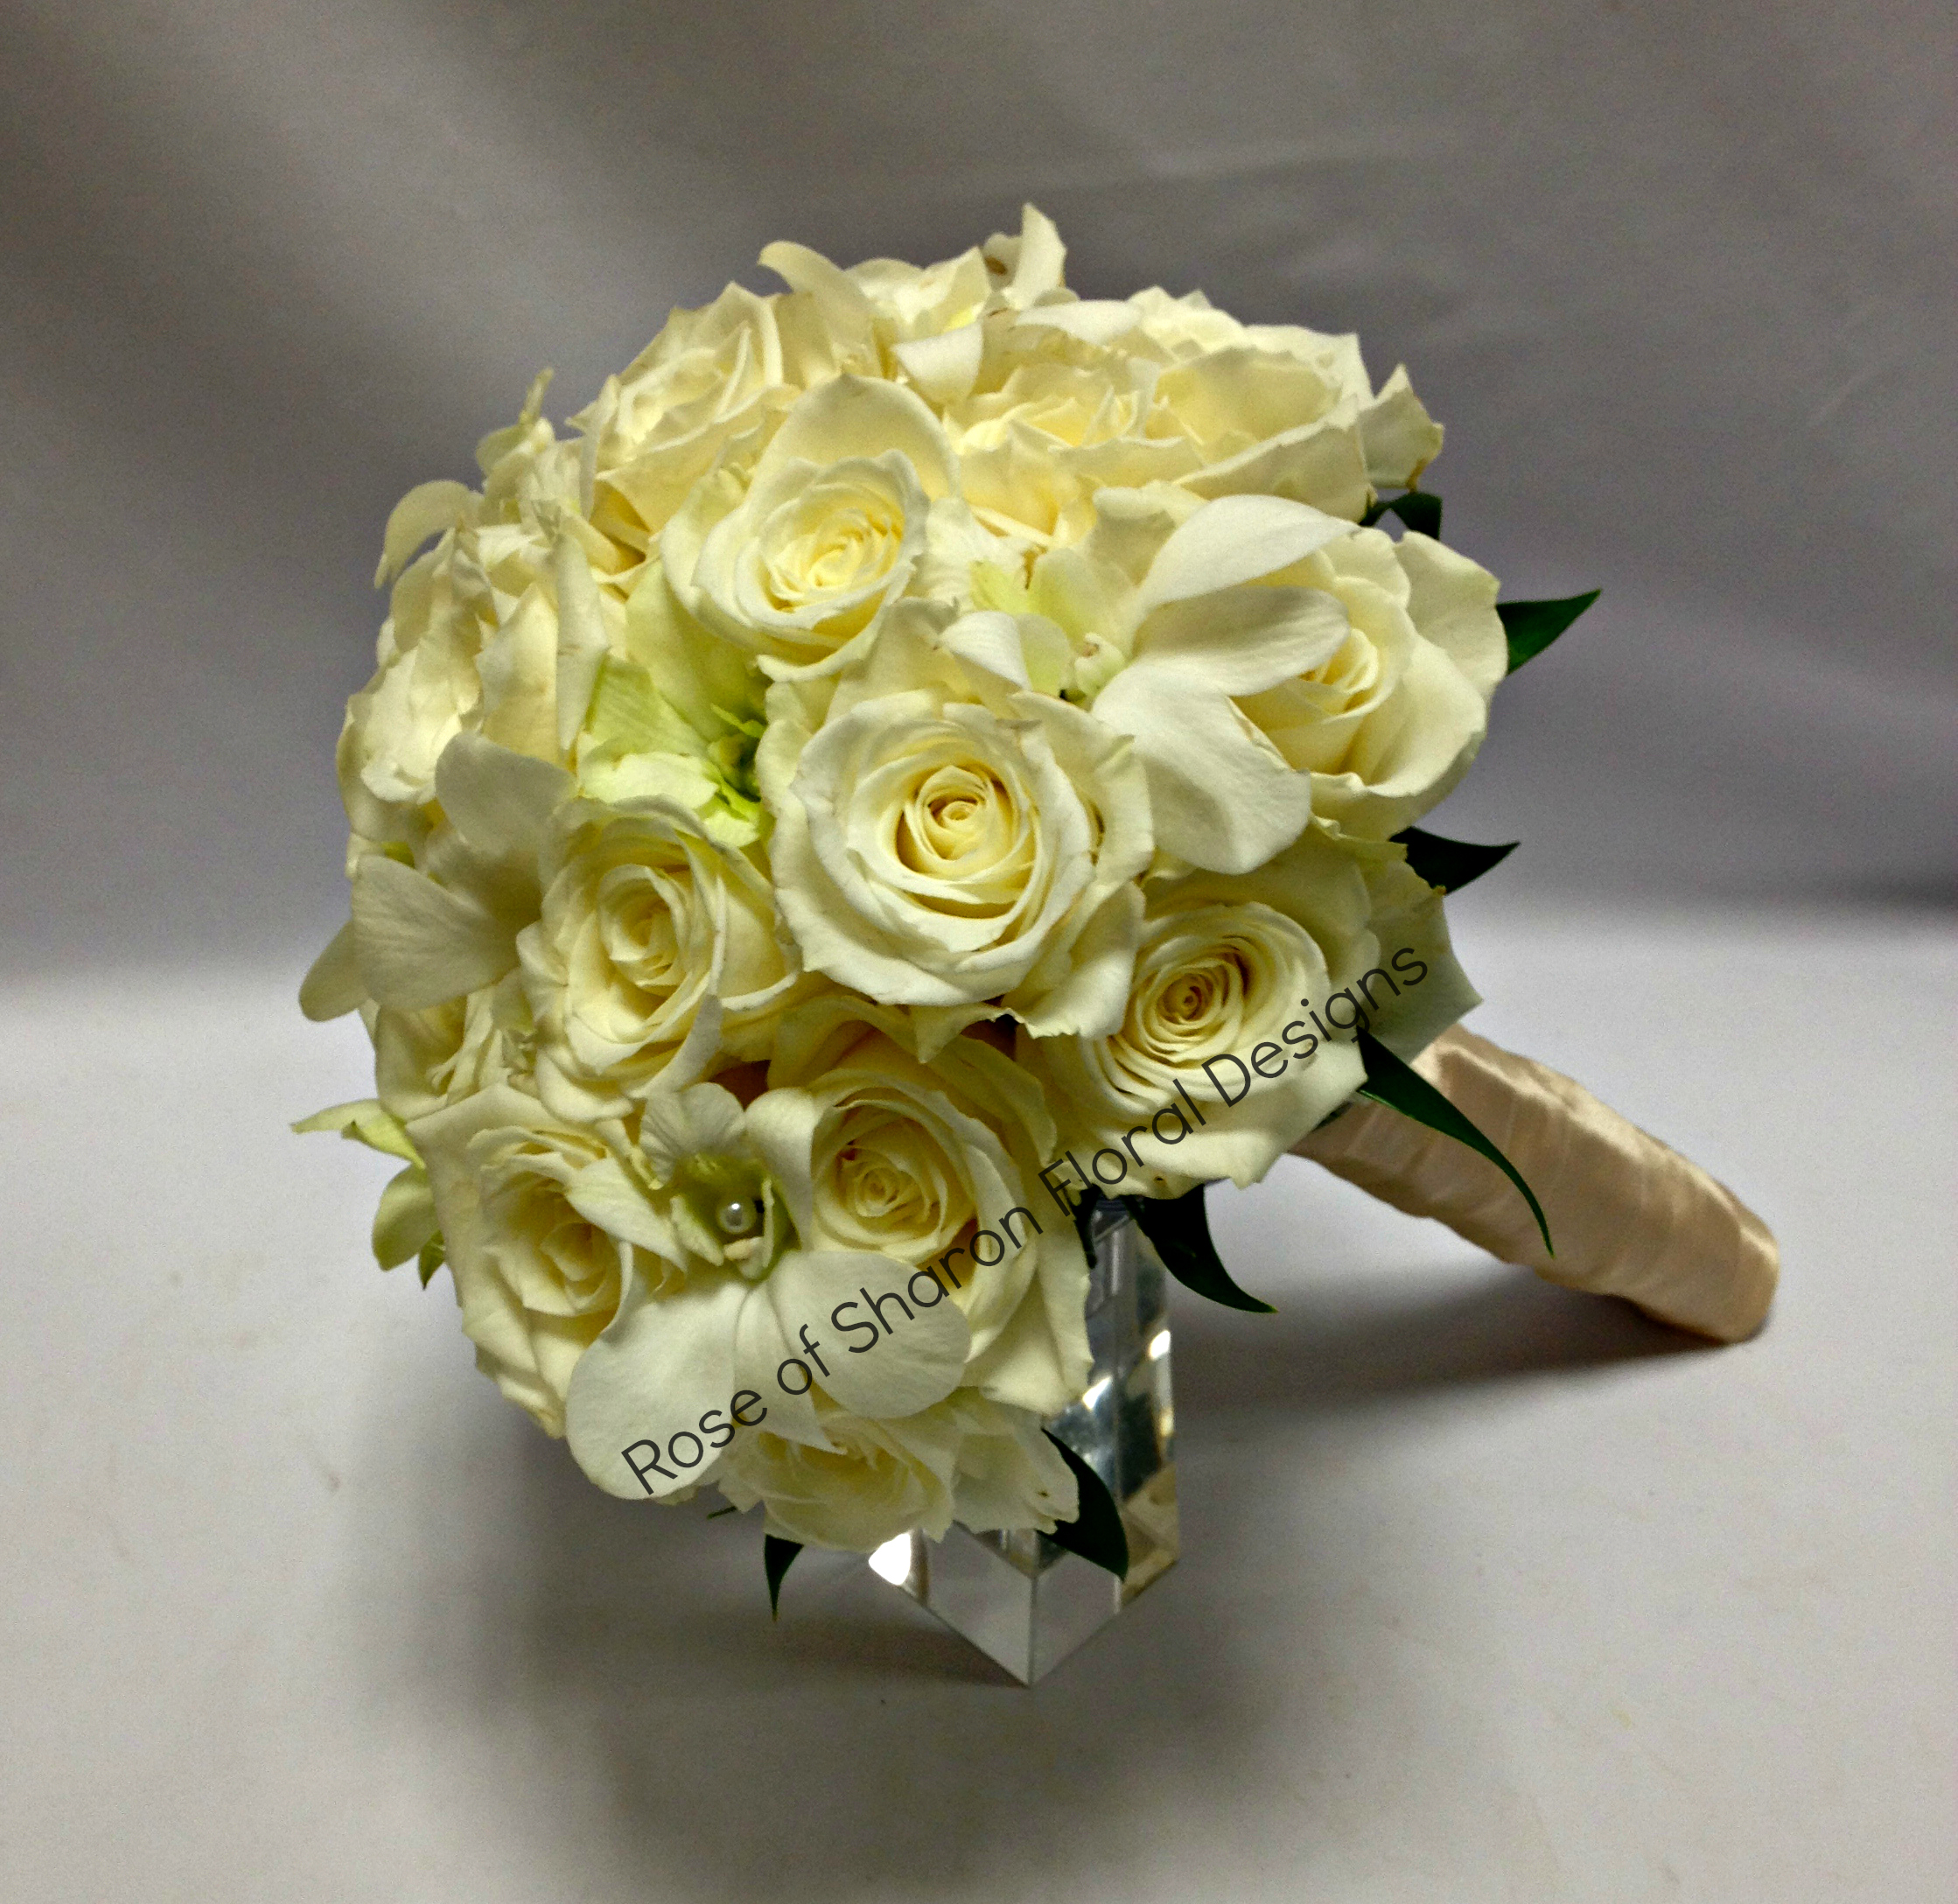 Hand Tied Bouquet. White Roses and Orchids. Rose of Sharon Floral Designs